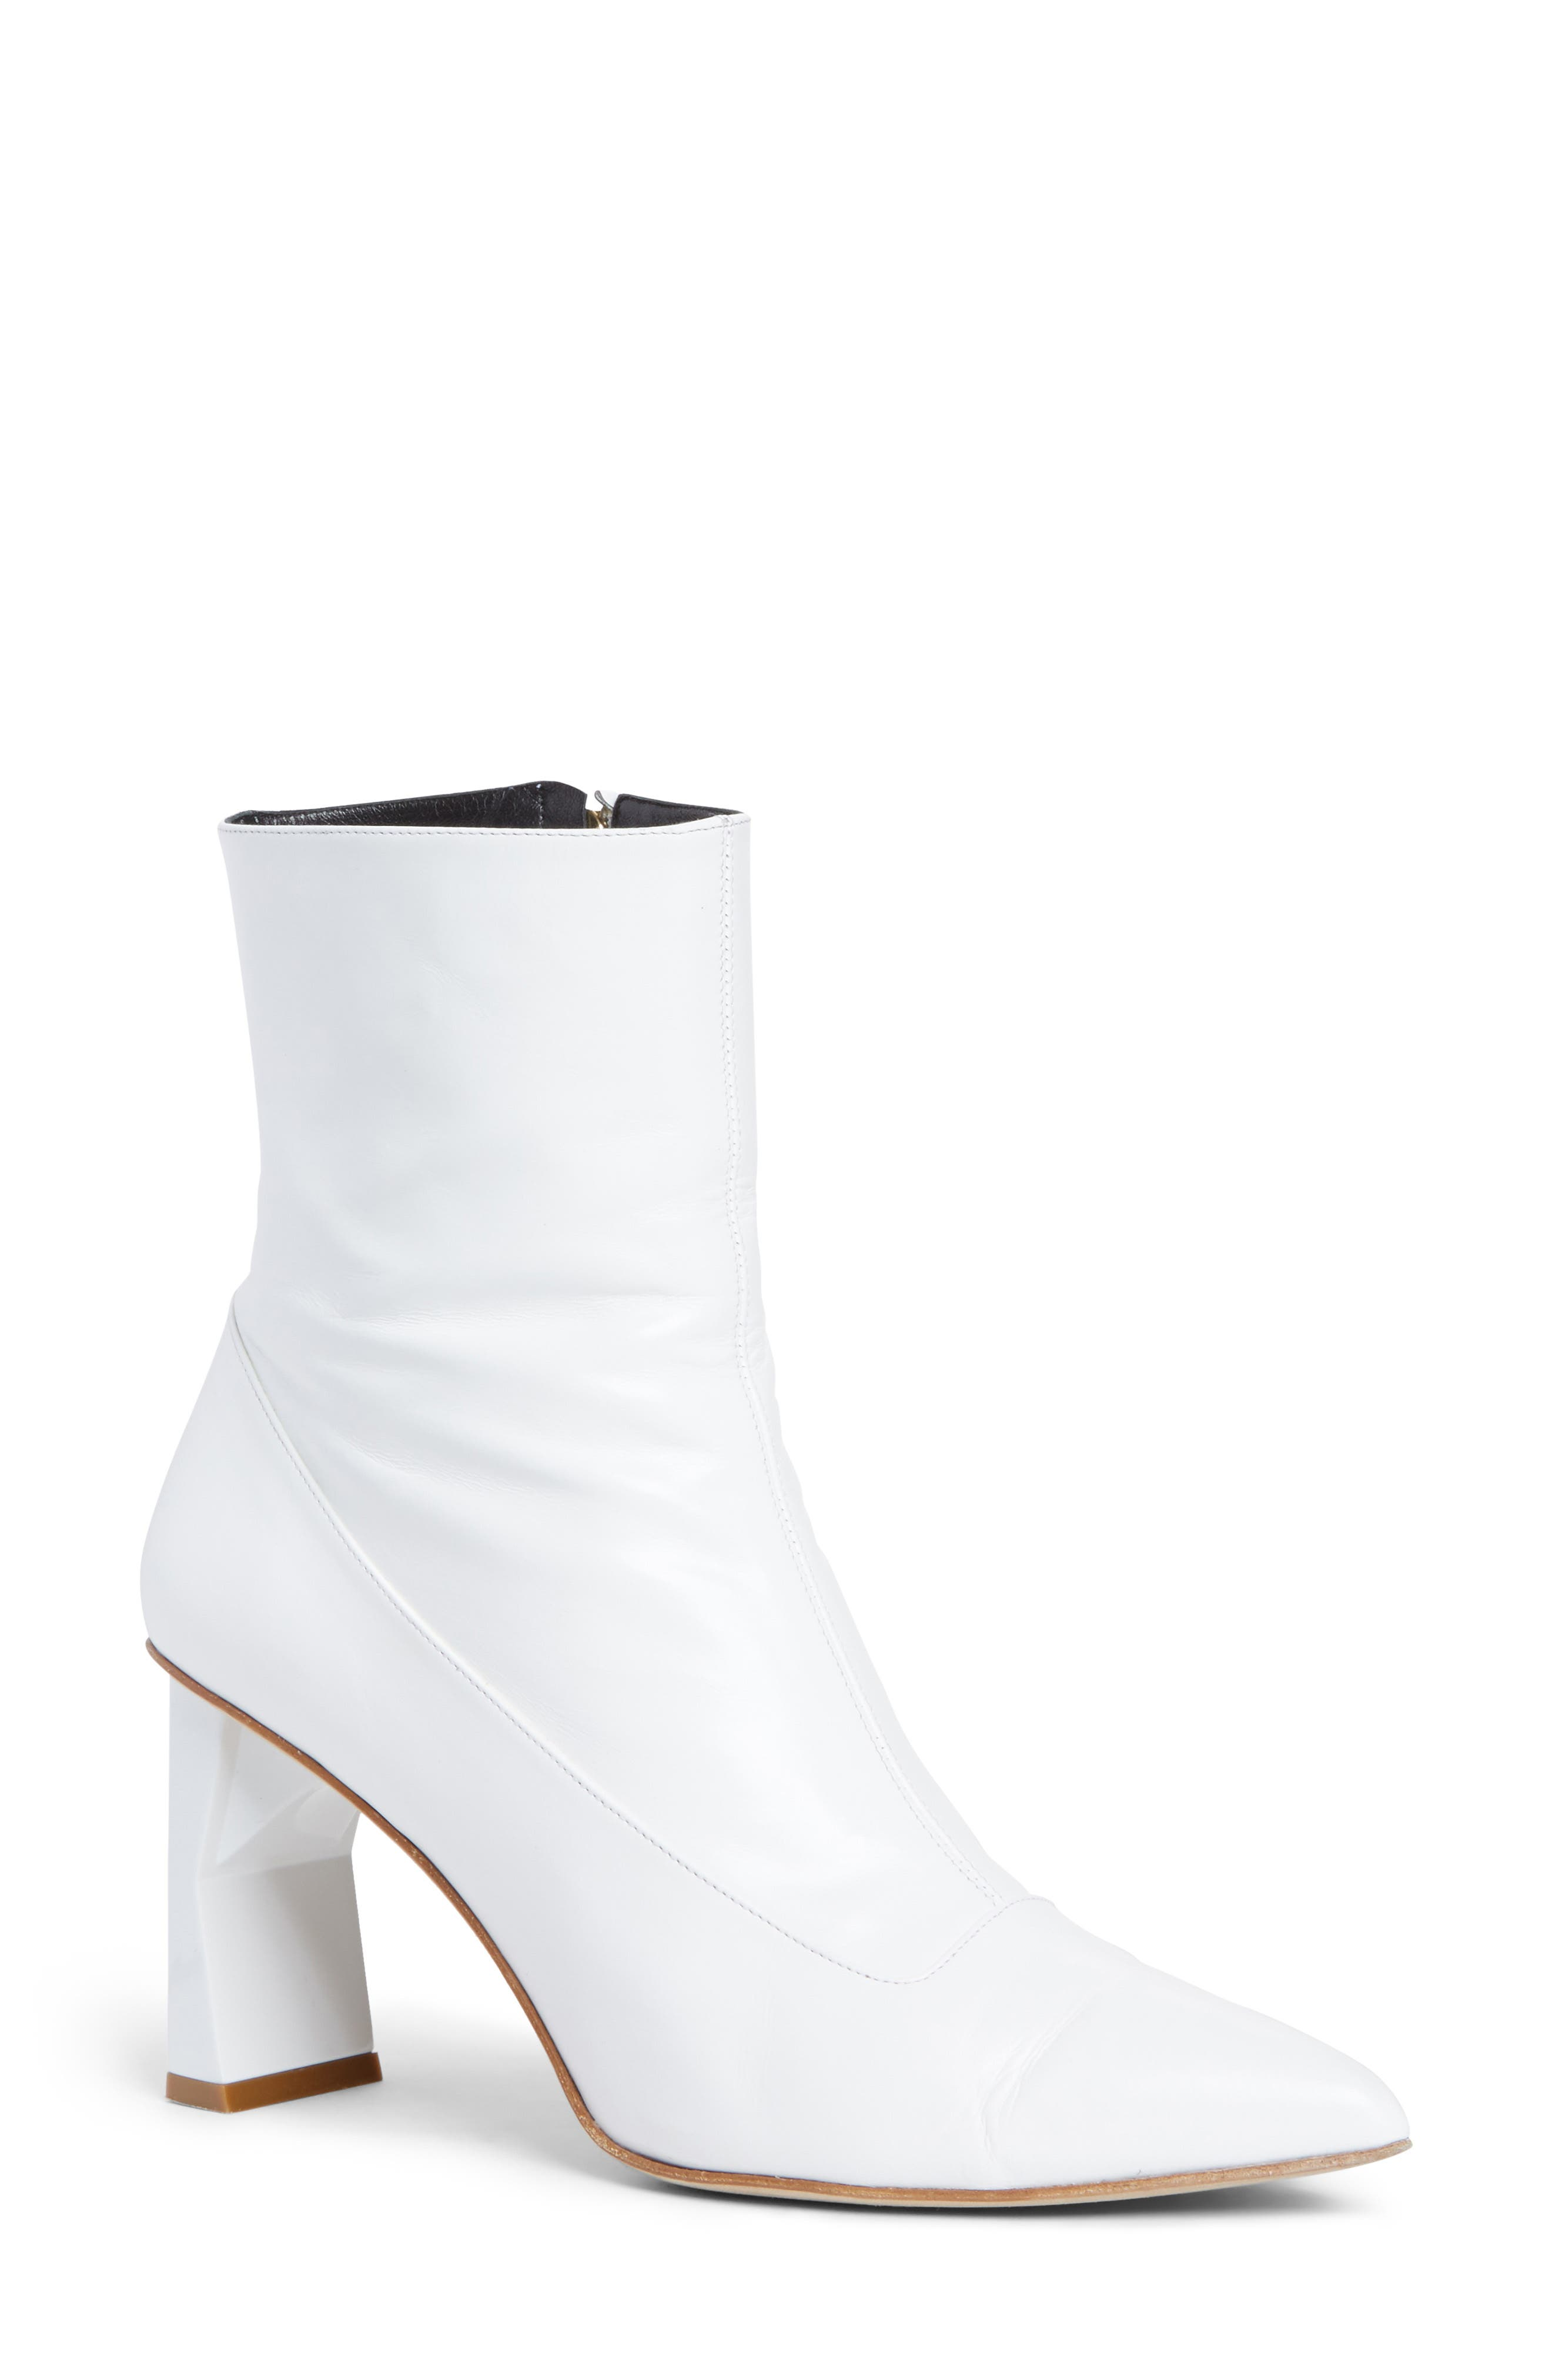 Alexis Pointy Toe Bootie,                             Main thumbnail 1, color,                             100